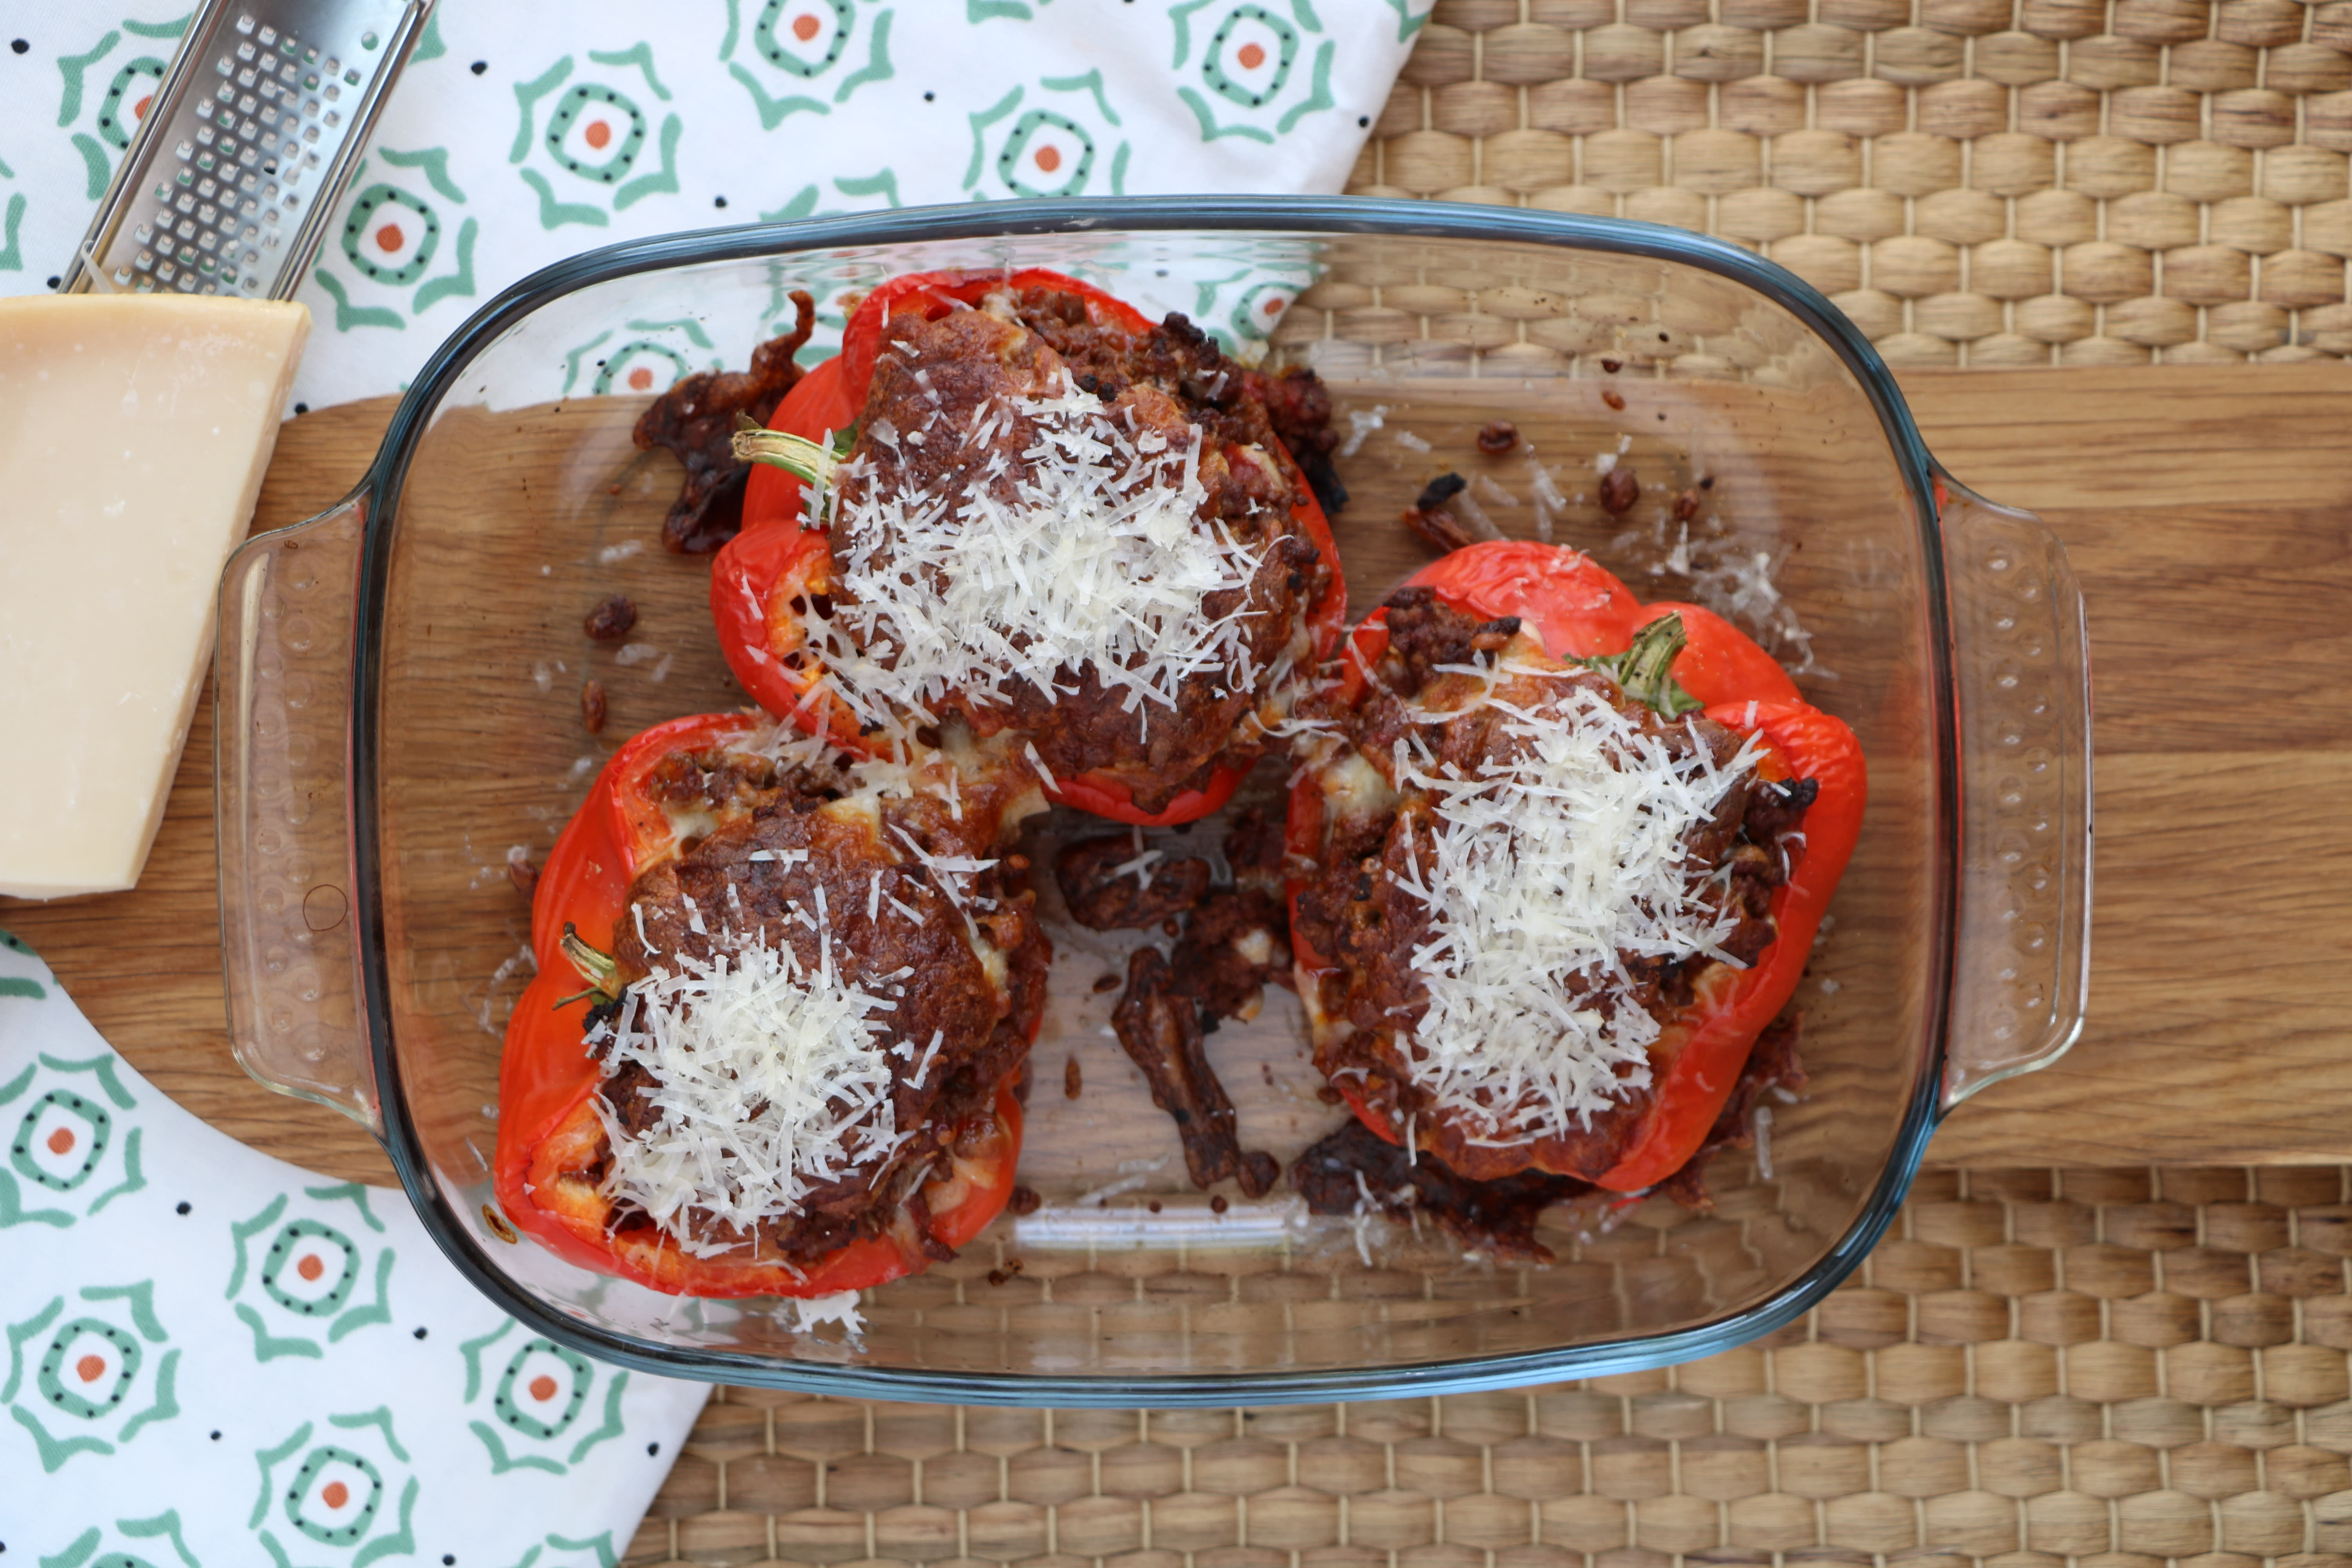 Stuffed Bell Peppers with Beef and Mozzarella